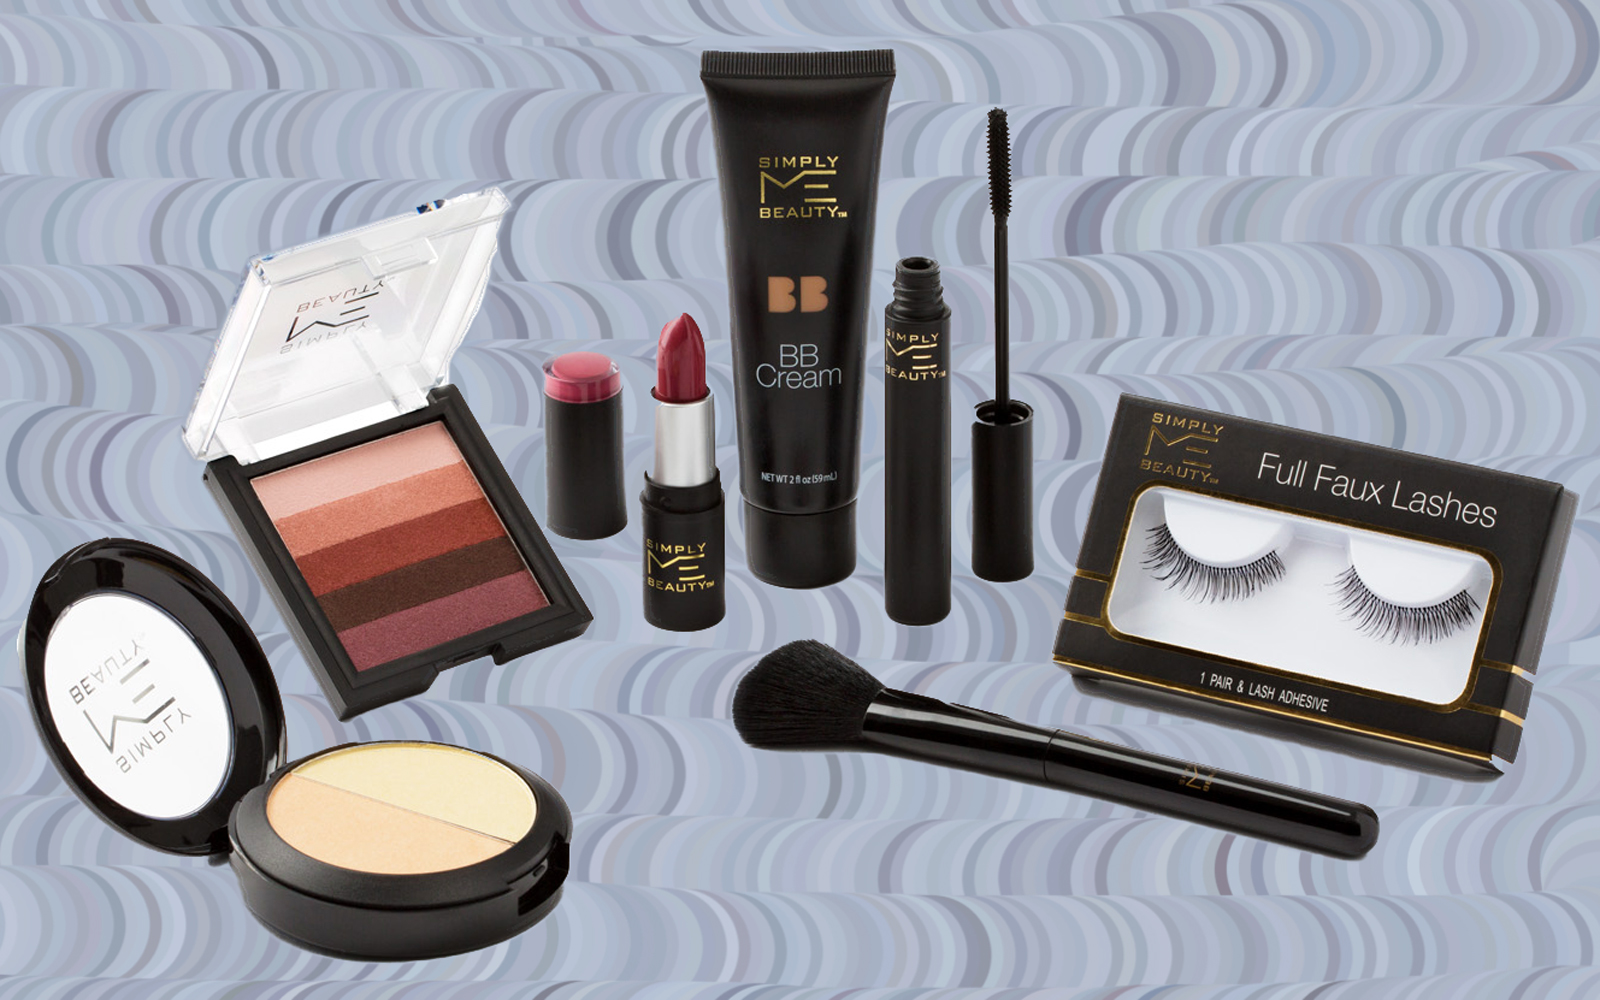 7-11 cosmetic line, Simply Me Beauty